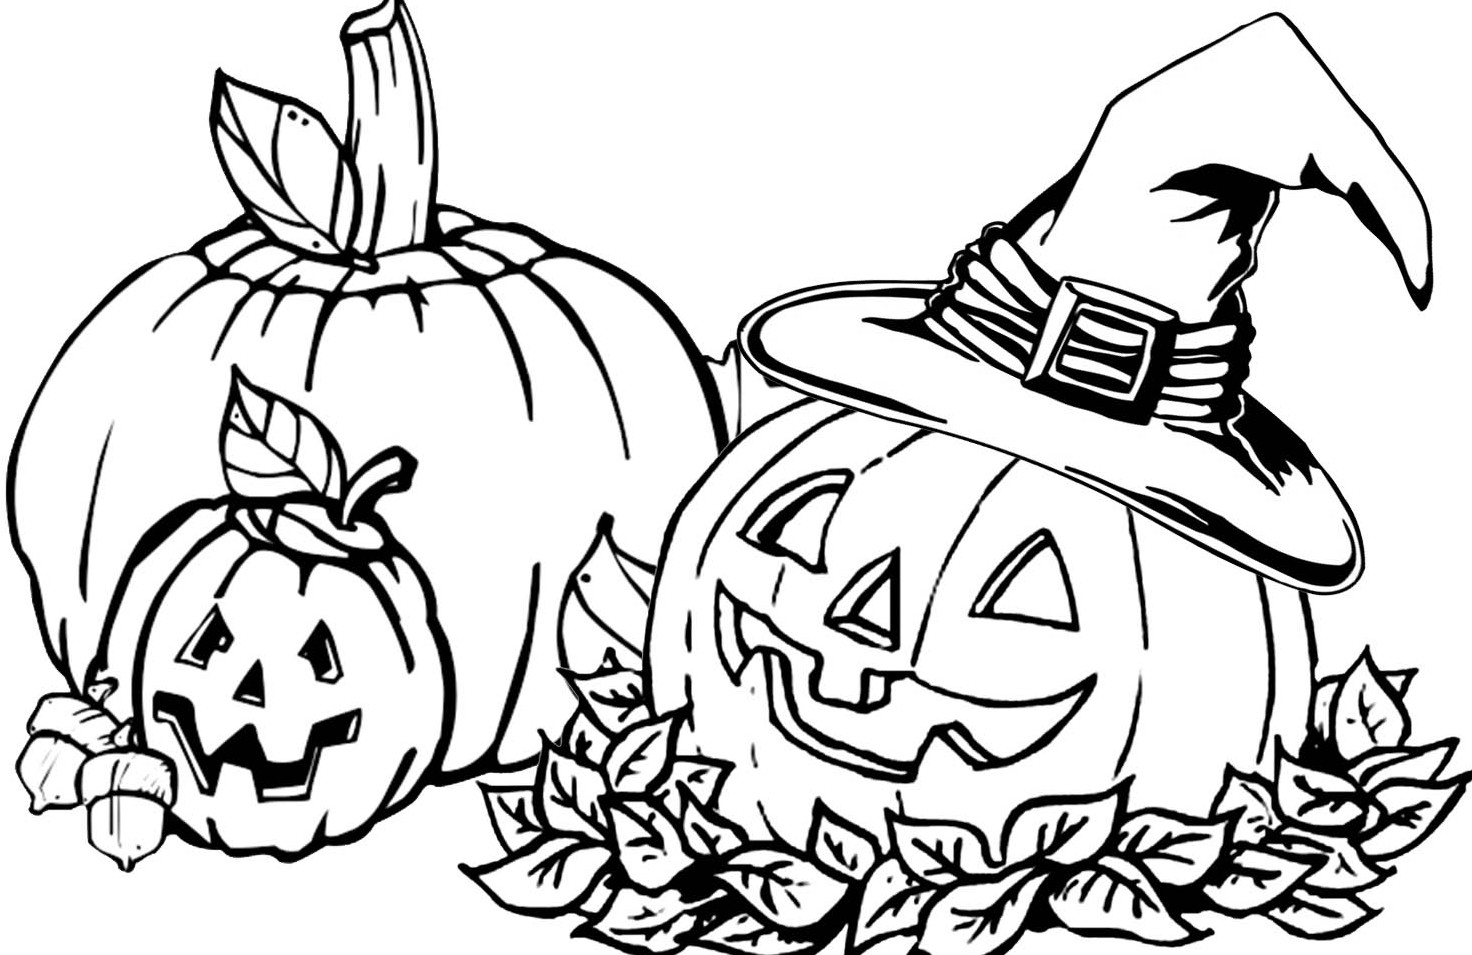 Pumpkin Patch Coloring Page | Free download on ClipArtMag